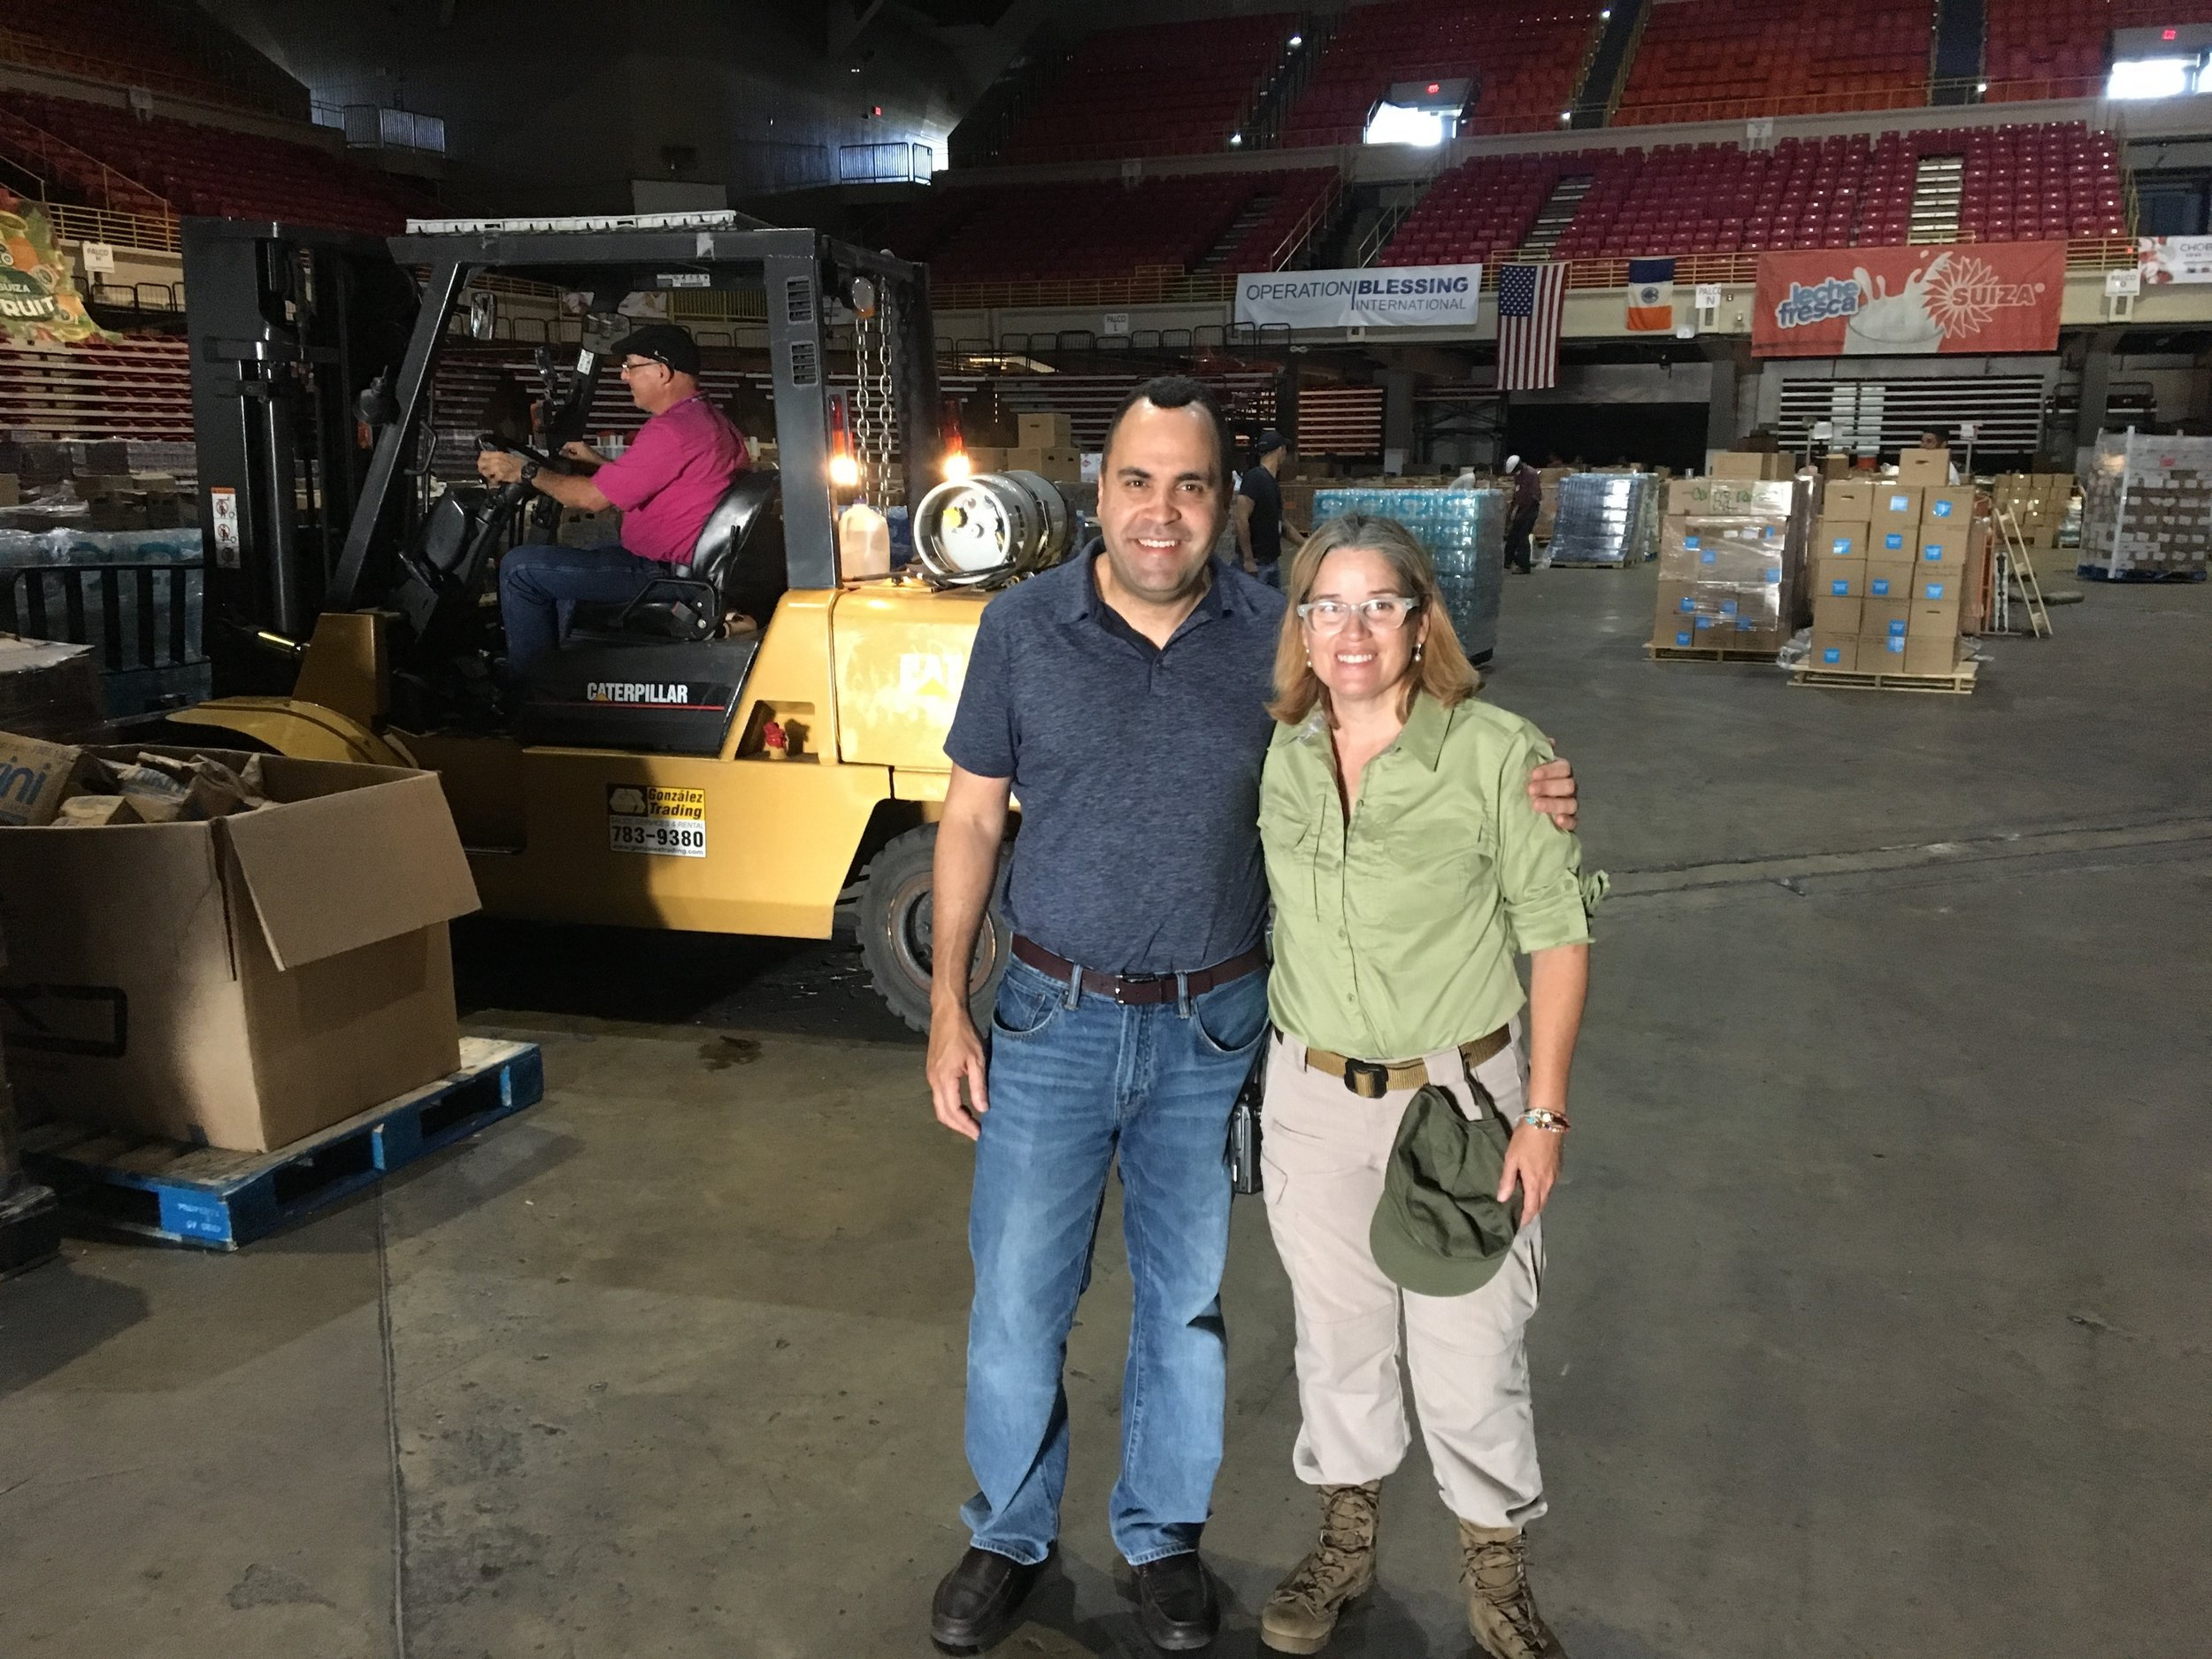 Hispanic Federation President, Jose Calderon and San Juan Mayor, Carmen Yulin. Hispanic Federation delivered 220,000 pounds of water, food and other essentials to the Roberto Clemente Coliseum in San Juan